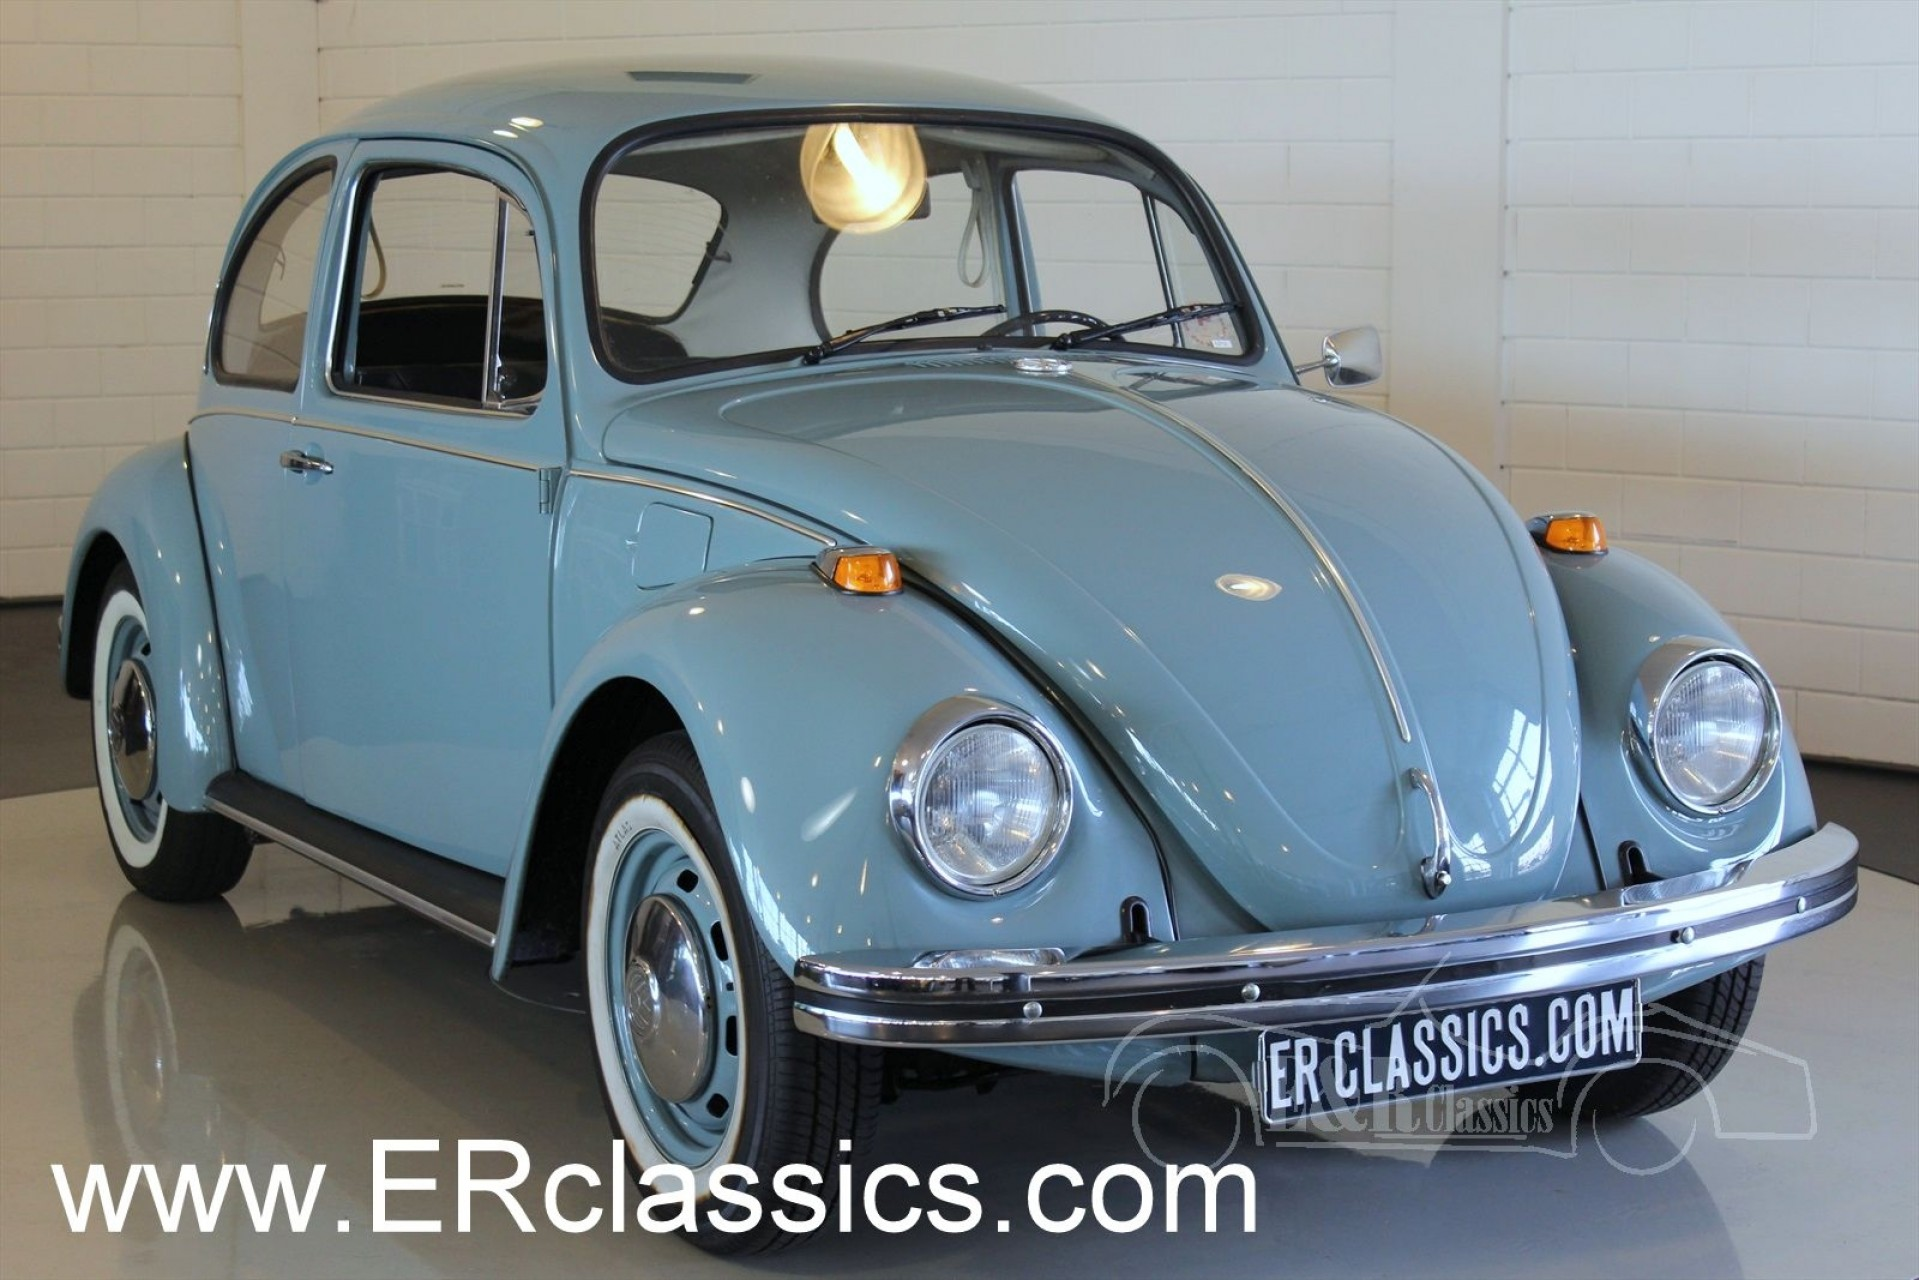 volkswagen beetle 1300s 1973 vendre erclassics. Black Bedroom Furniture Sets. Home Design Ideas